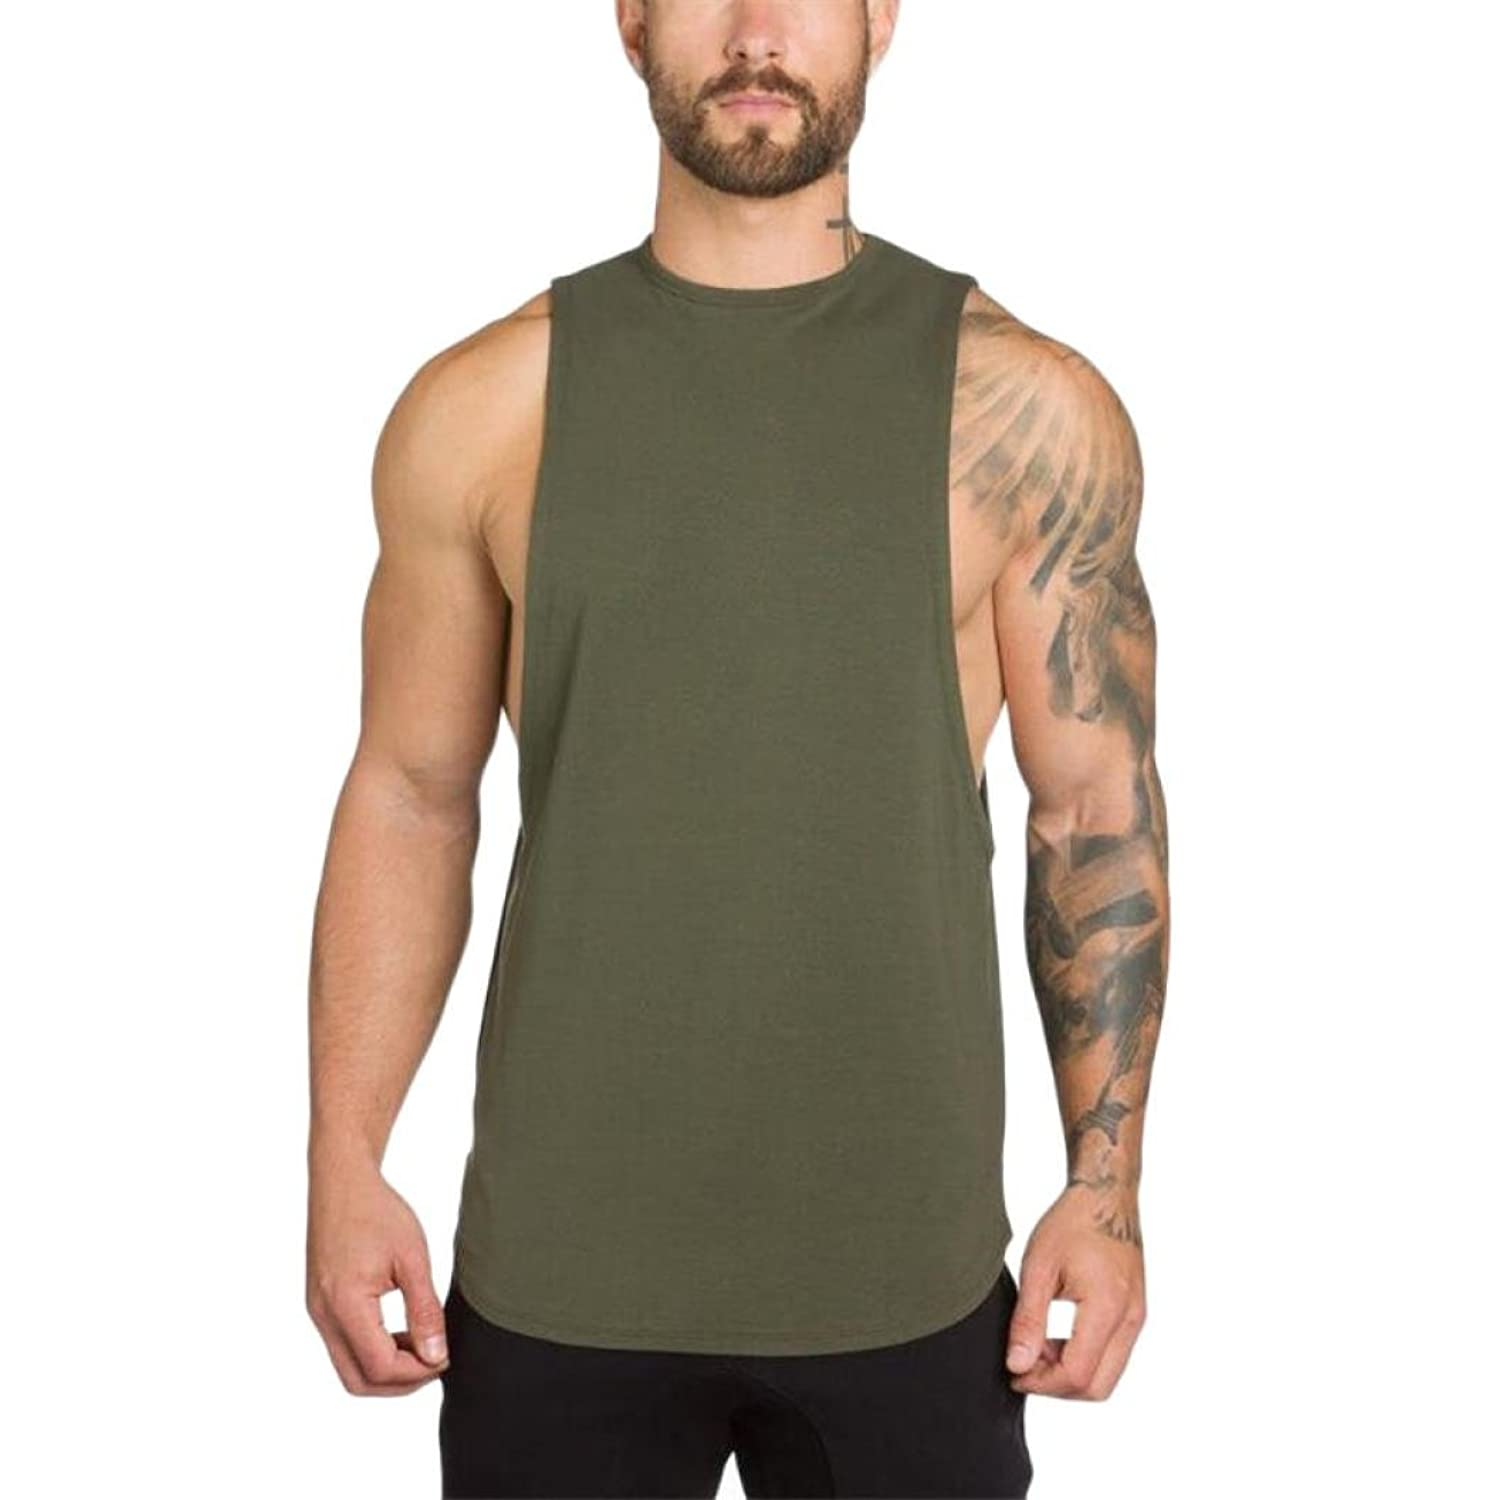 0f7d54262a8 ❊Material:Cotton Blend♥♥Men's force cotton short sleeve t-shirt relaxed fit  men's short sleeve work shirt men's casual 3/4 sleeve baseball tshirt  raglan ...